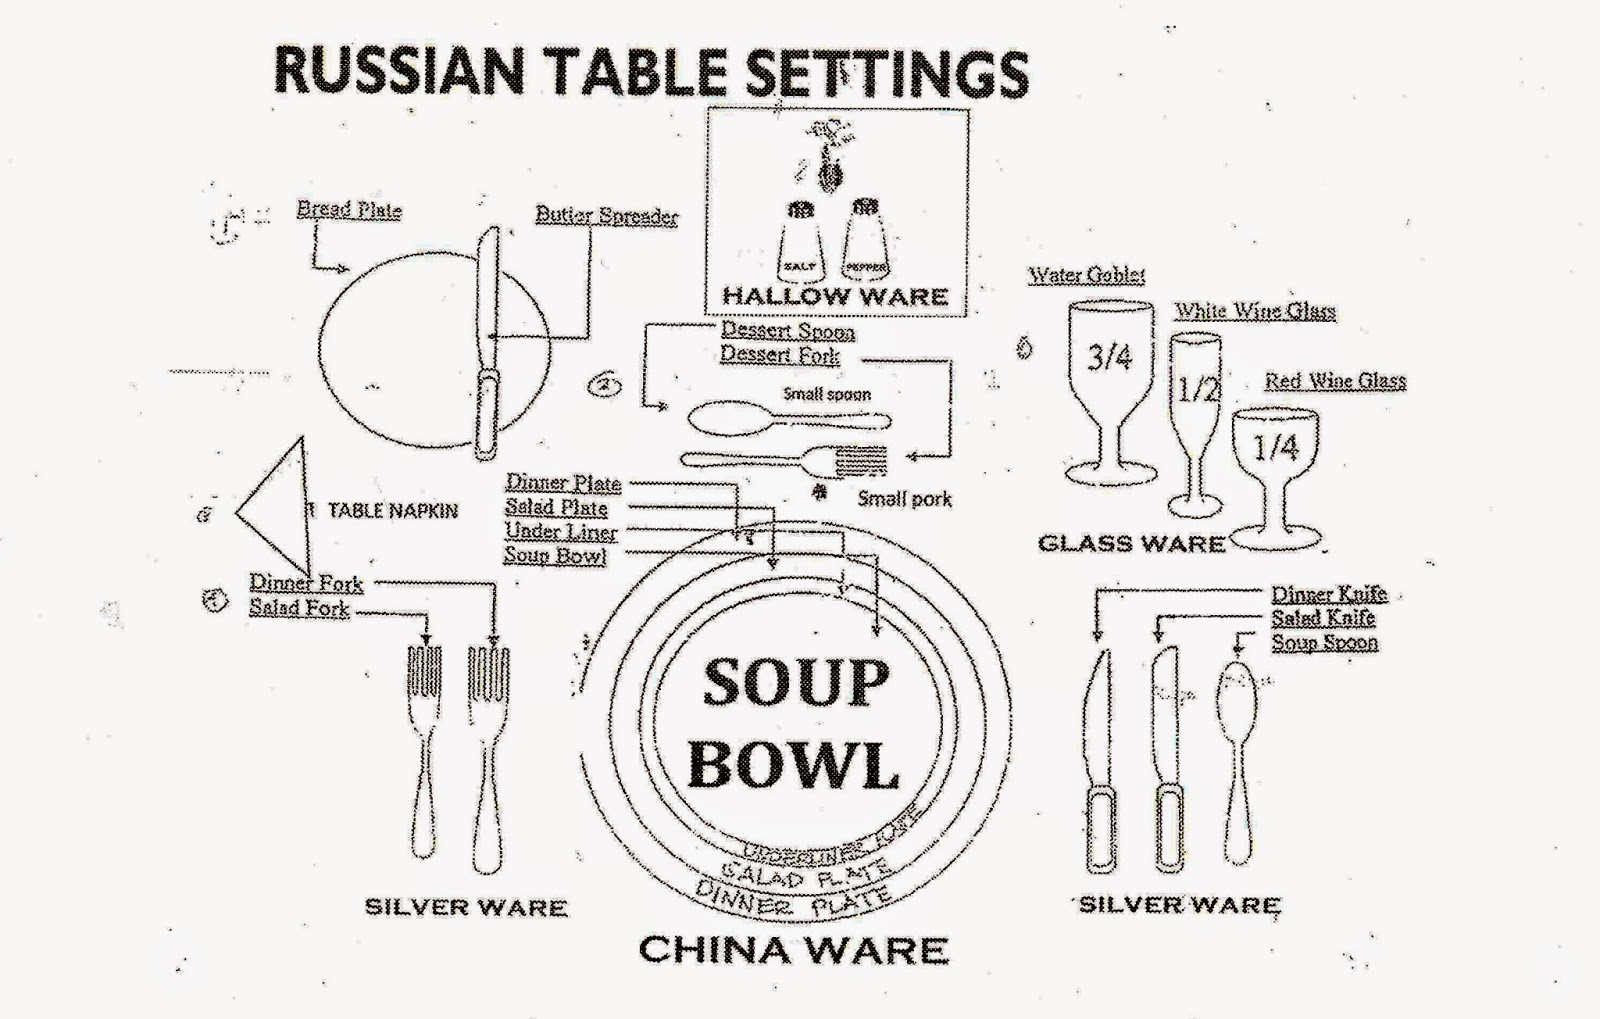 Russian Table Setting ~ Creative Ideas About Interior and Furniture